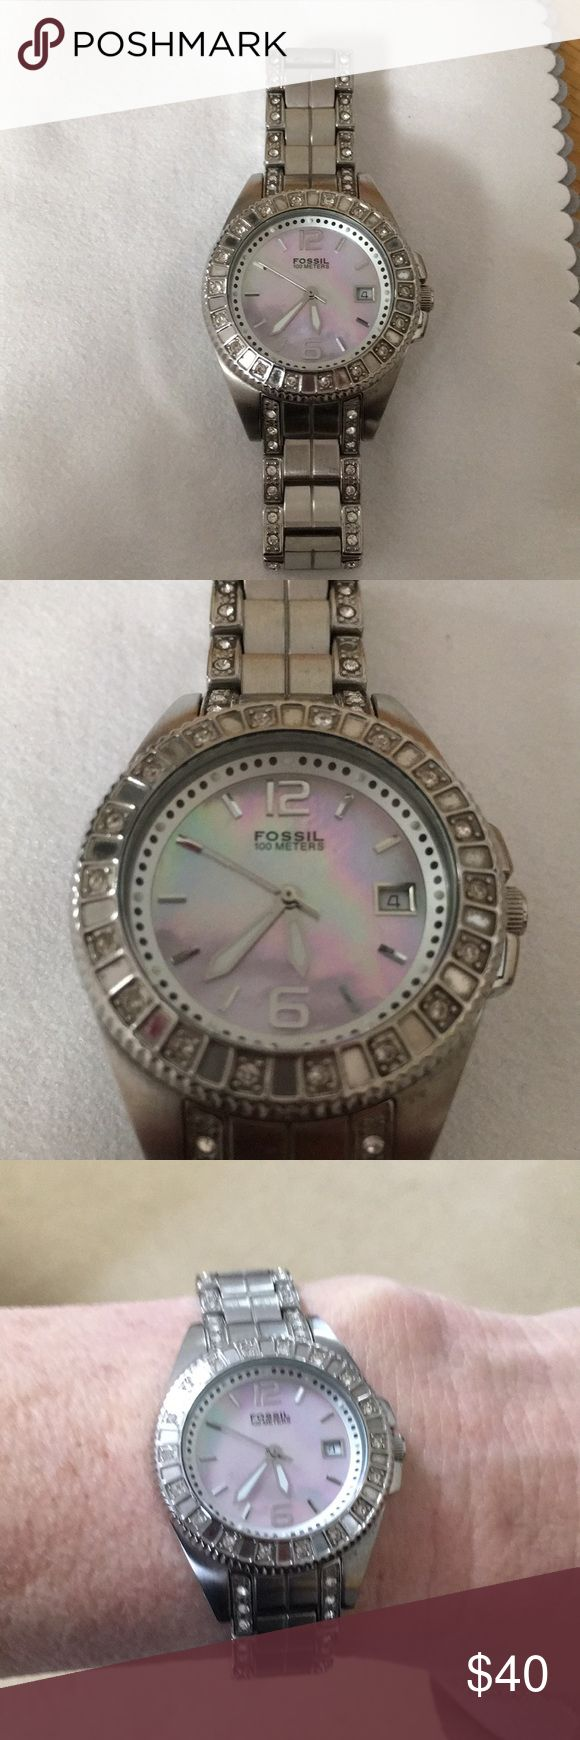 Fossil watch Stainless steel mother of pearl face needs battery Accessories Watches